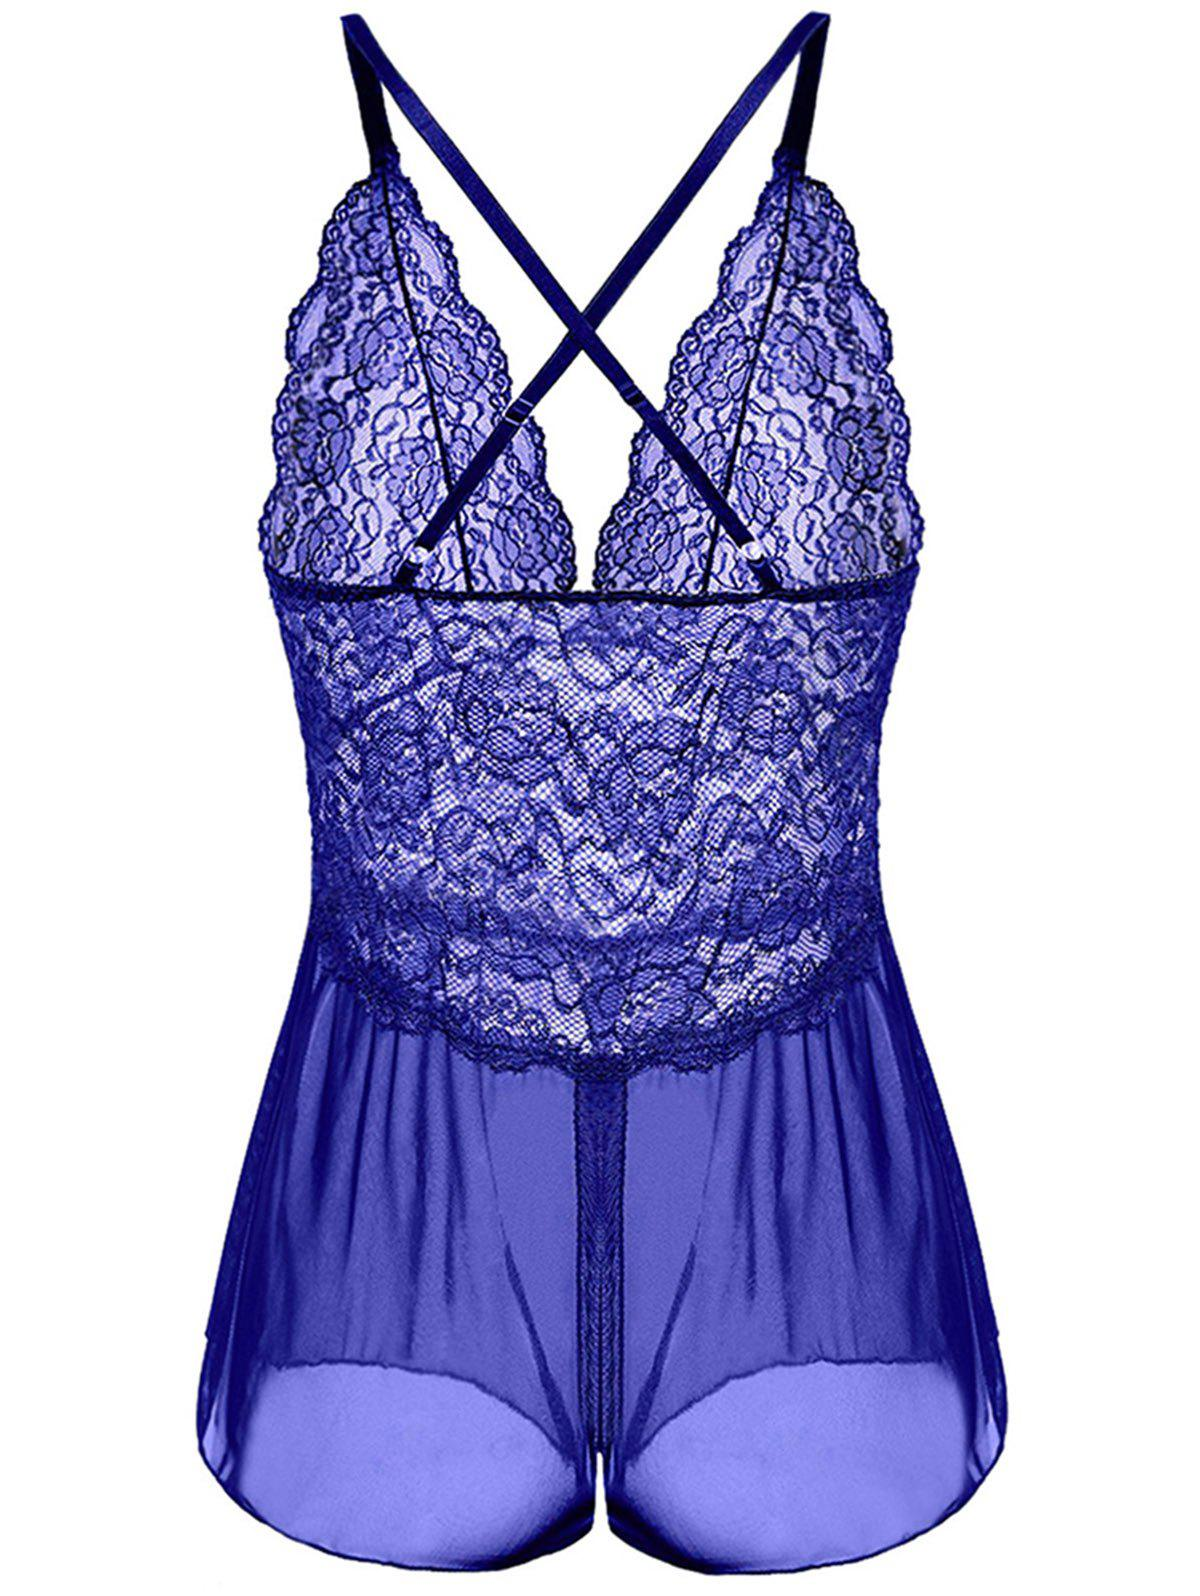 V-neck Sexy One Piece Babydoll Mesh Chemise Sleepwear - BLUE ORCHID 3XL